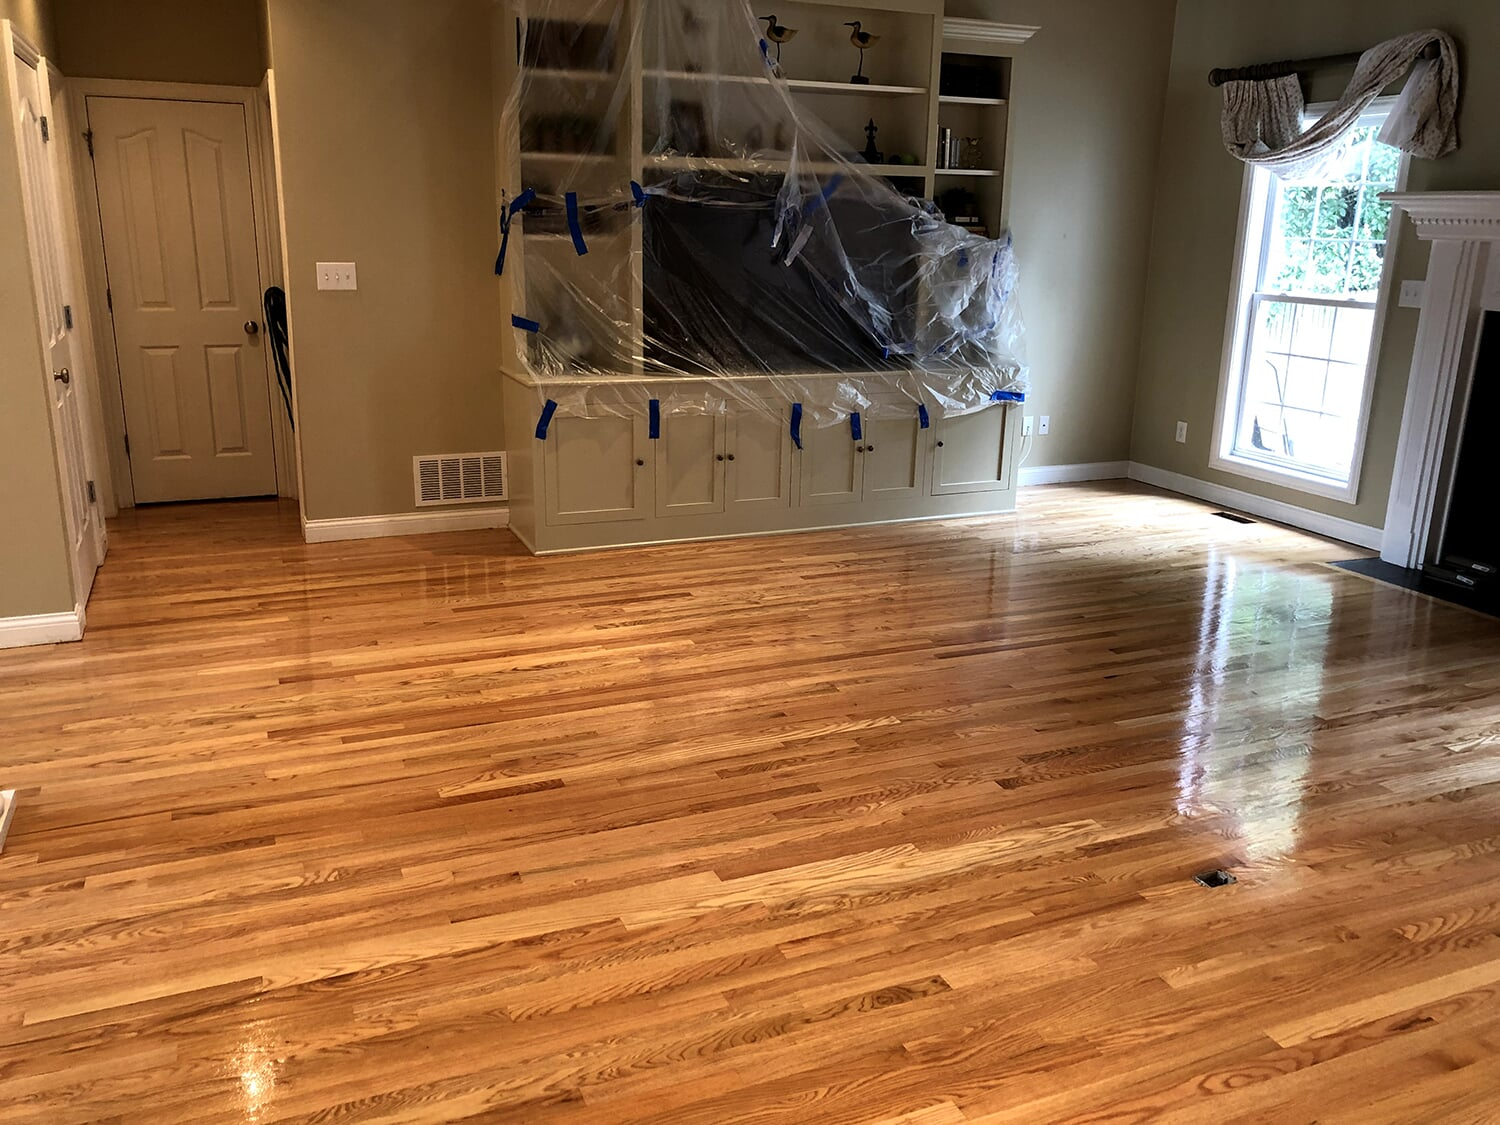 Glossy finished hardwood flooring in Crestwood, KY from Unique Flooring Solutions